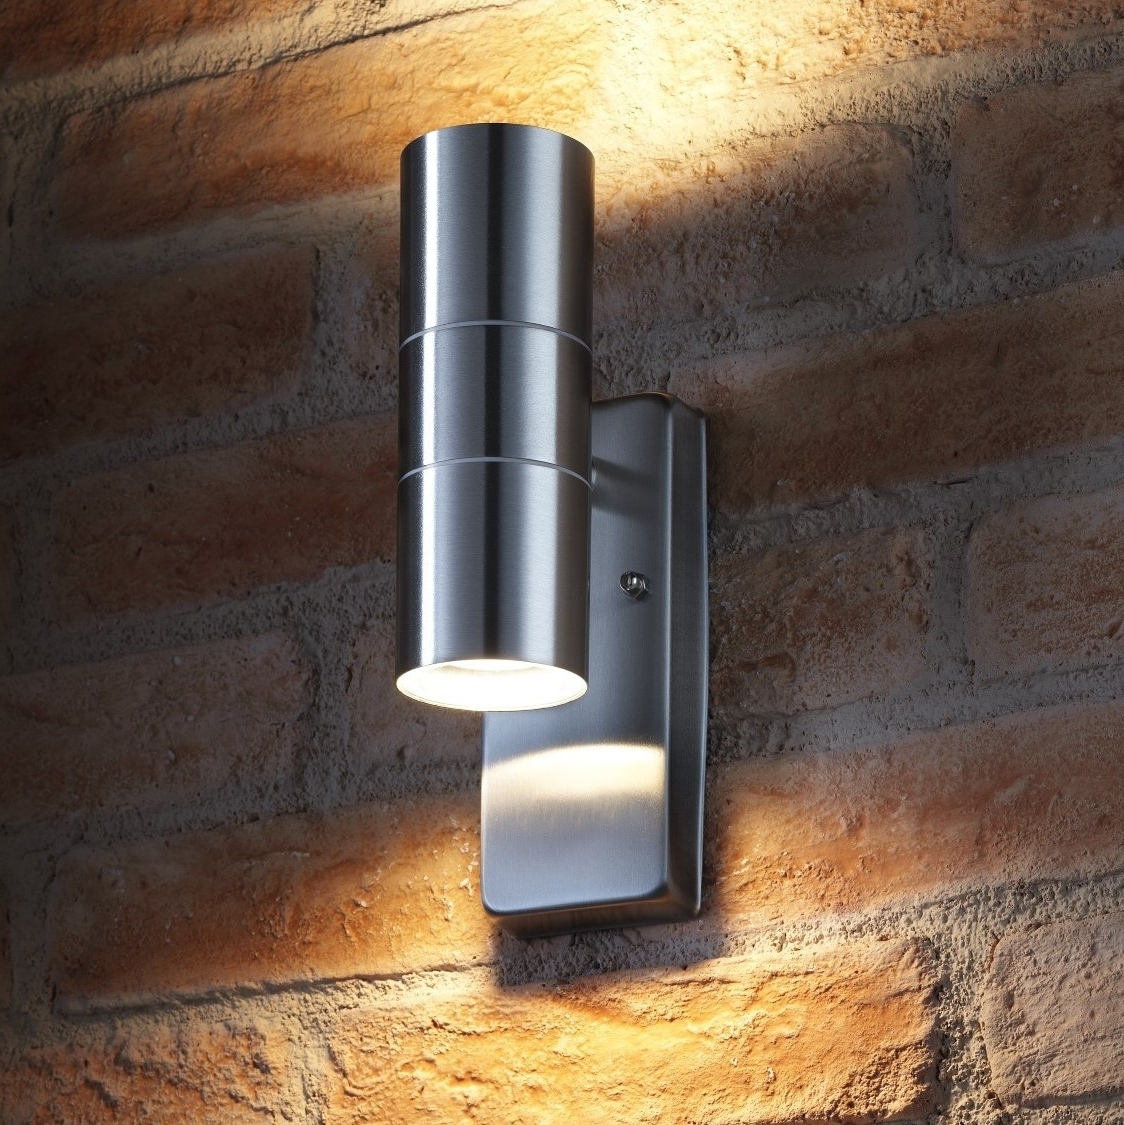 Auraglow Dusk Till Dawn Sensor Up & Down Outdoor Wall Light Within Favorite Up And Down Outdoor Wall Lighting (View 2 of 20)